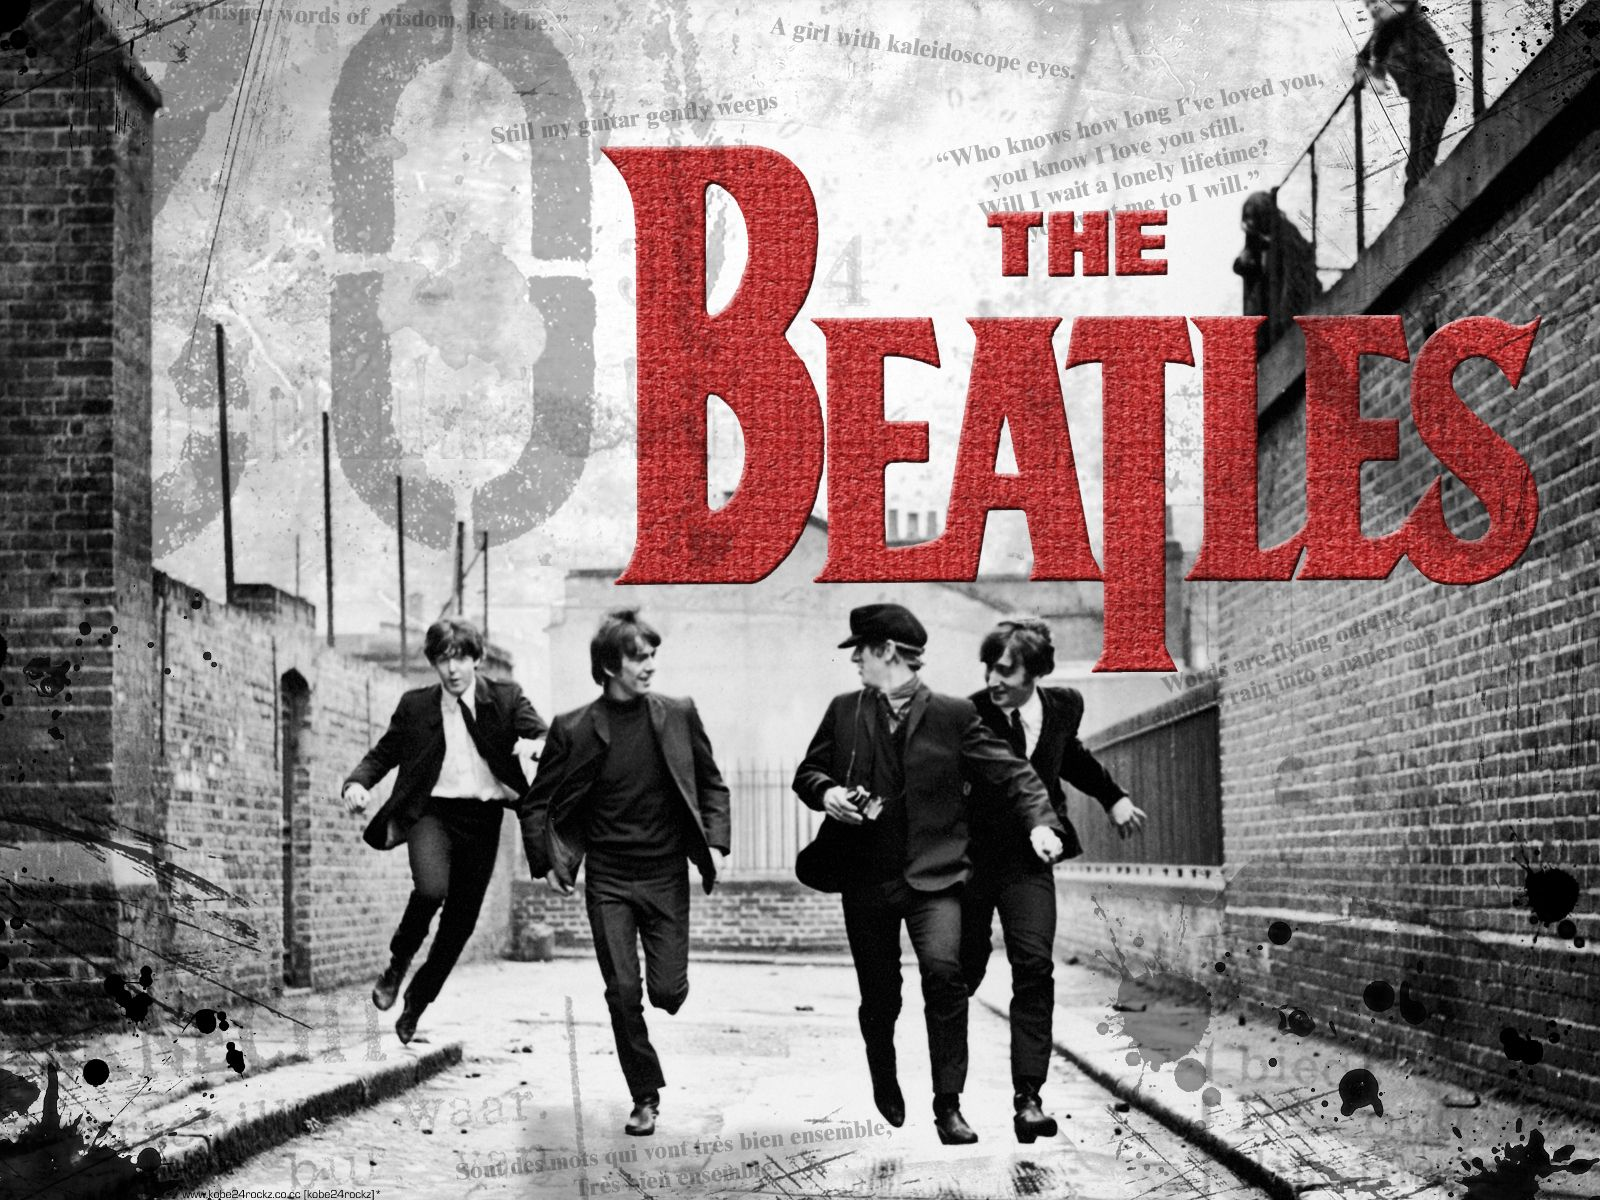 Image detail for -The-Beatles-the-beatles-9709058-1600-1200.jpg